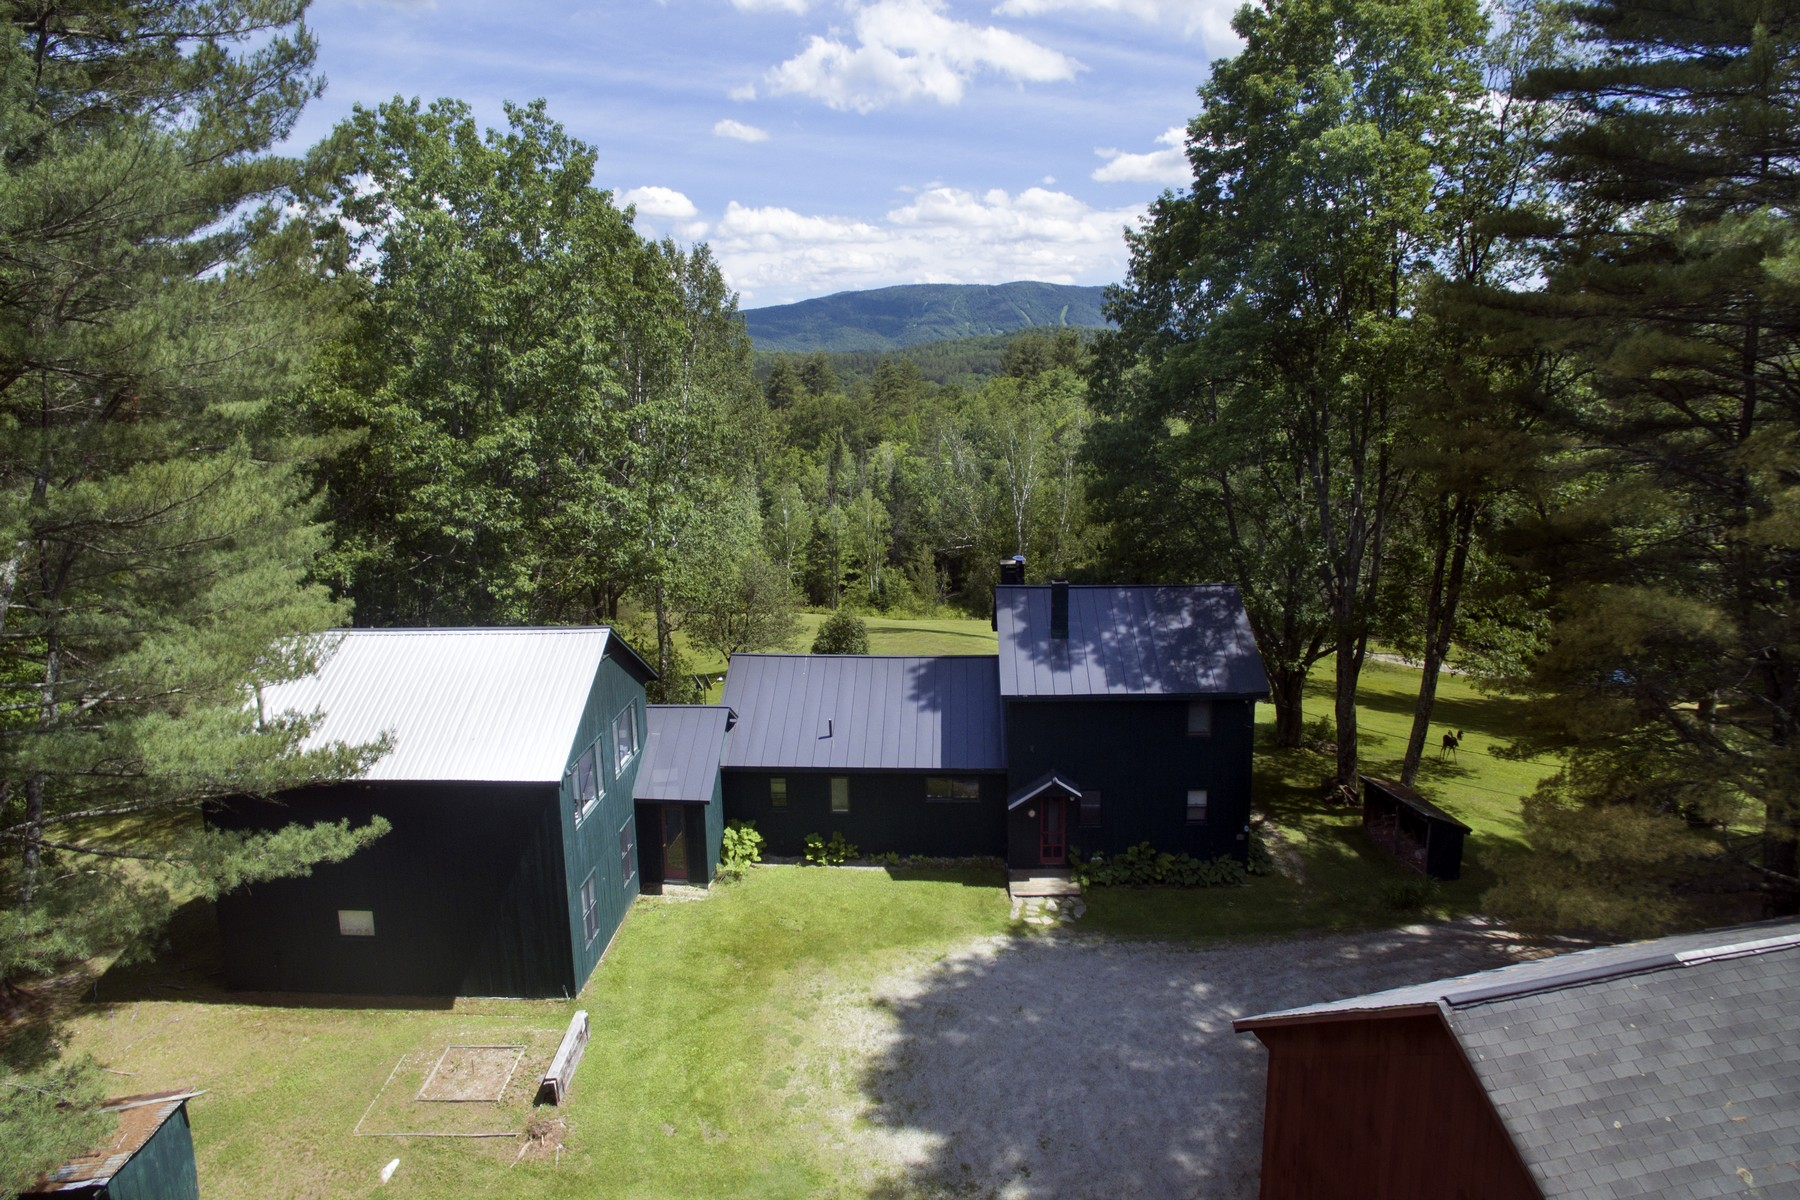 Single Family Home for Sale at Weston Country Property 2 Route 100 Route Weston, Vermont 05161 United States